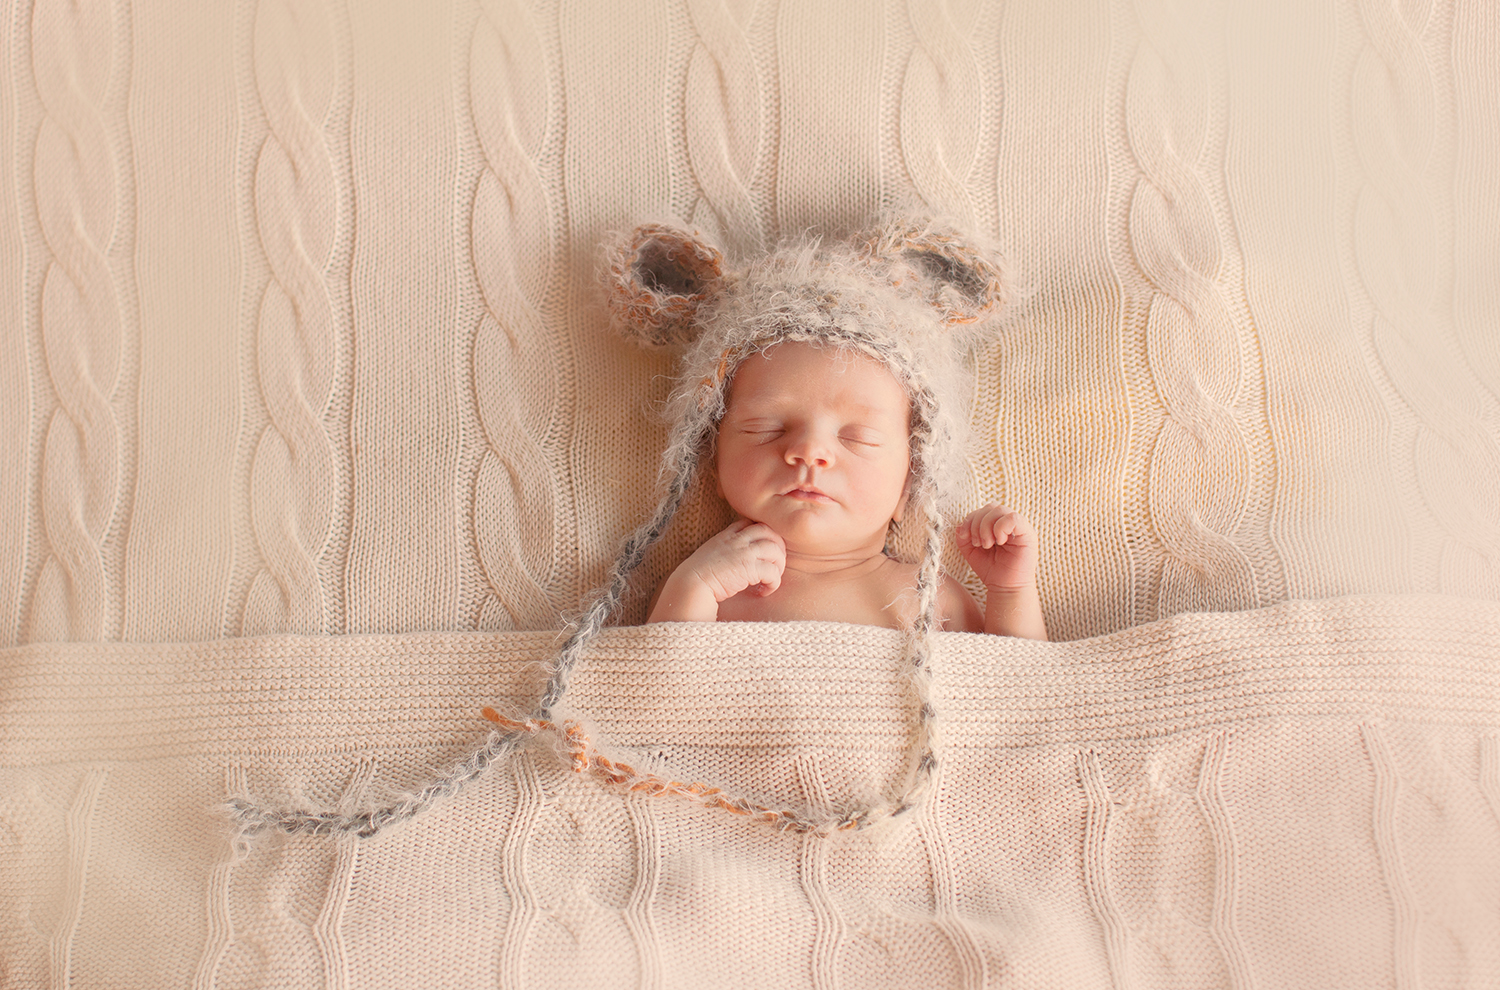 Dena_Rooney_newborn_photographer_0073.jpg